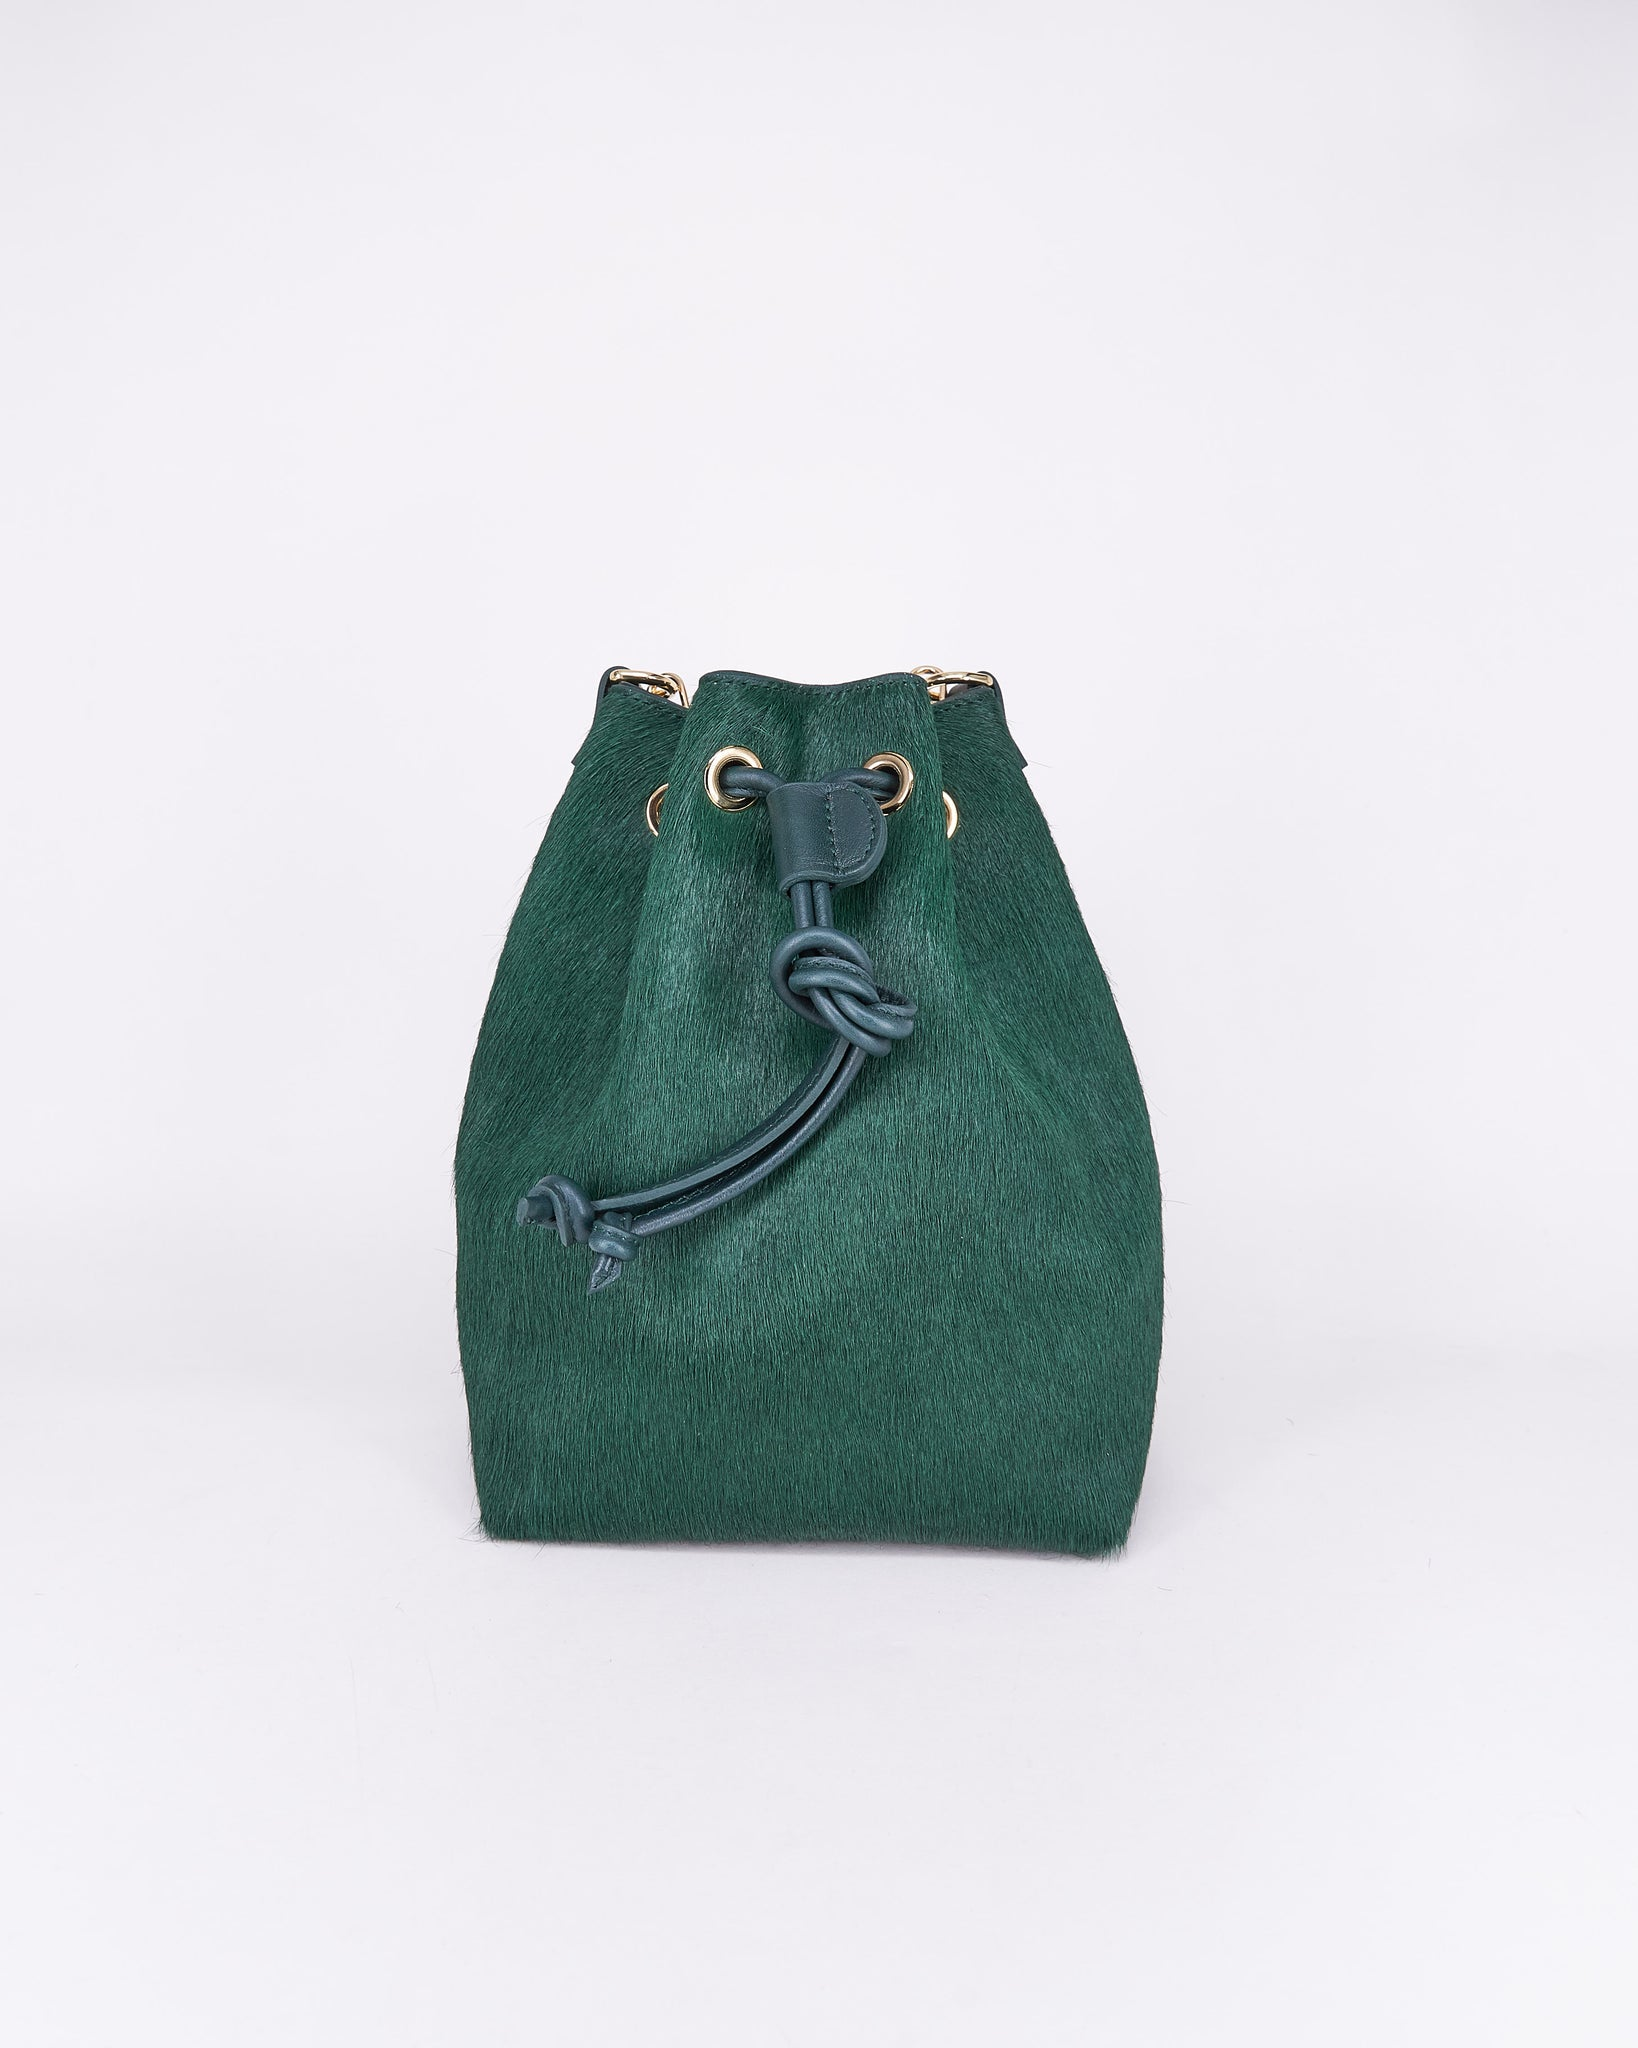 Bag-Nuo Sac-Nuovum-Leather-Green-localdesigners-Barcelona-Nuovum-Handmade-front